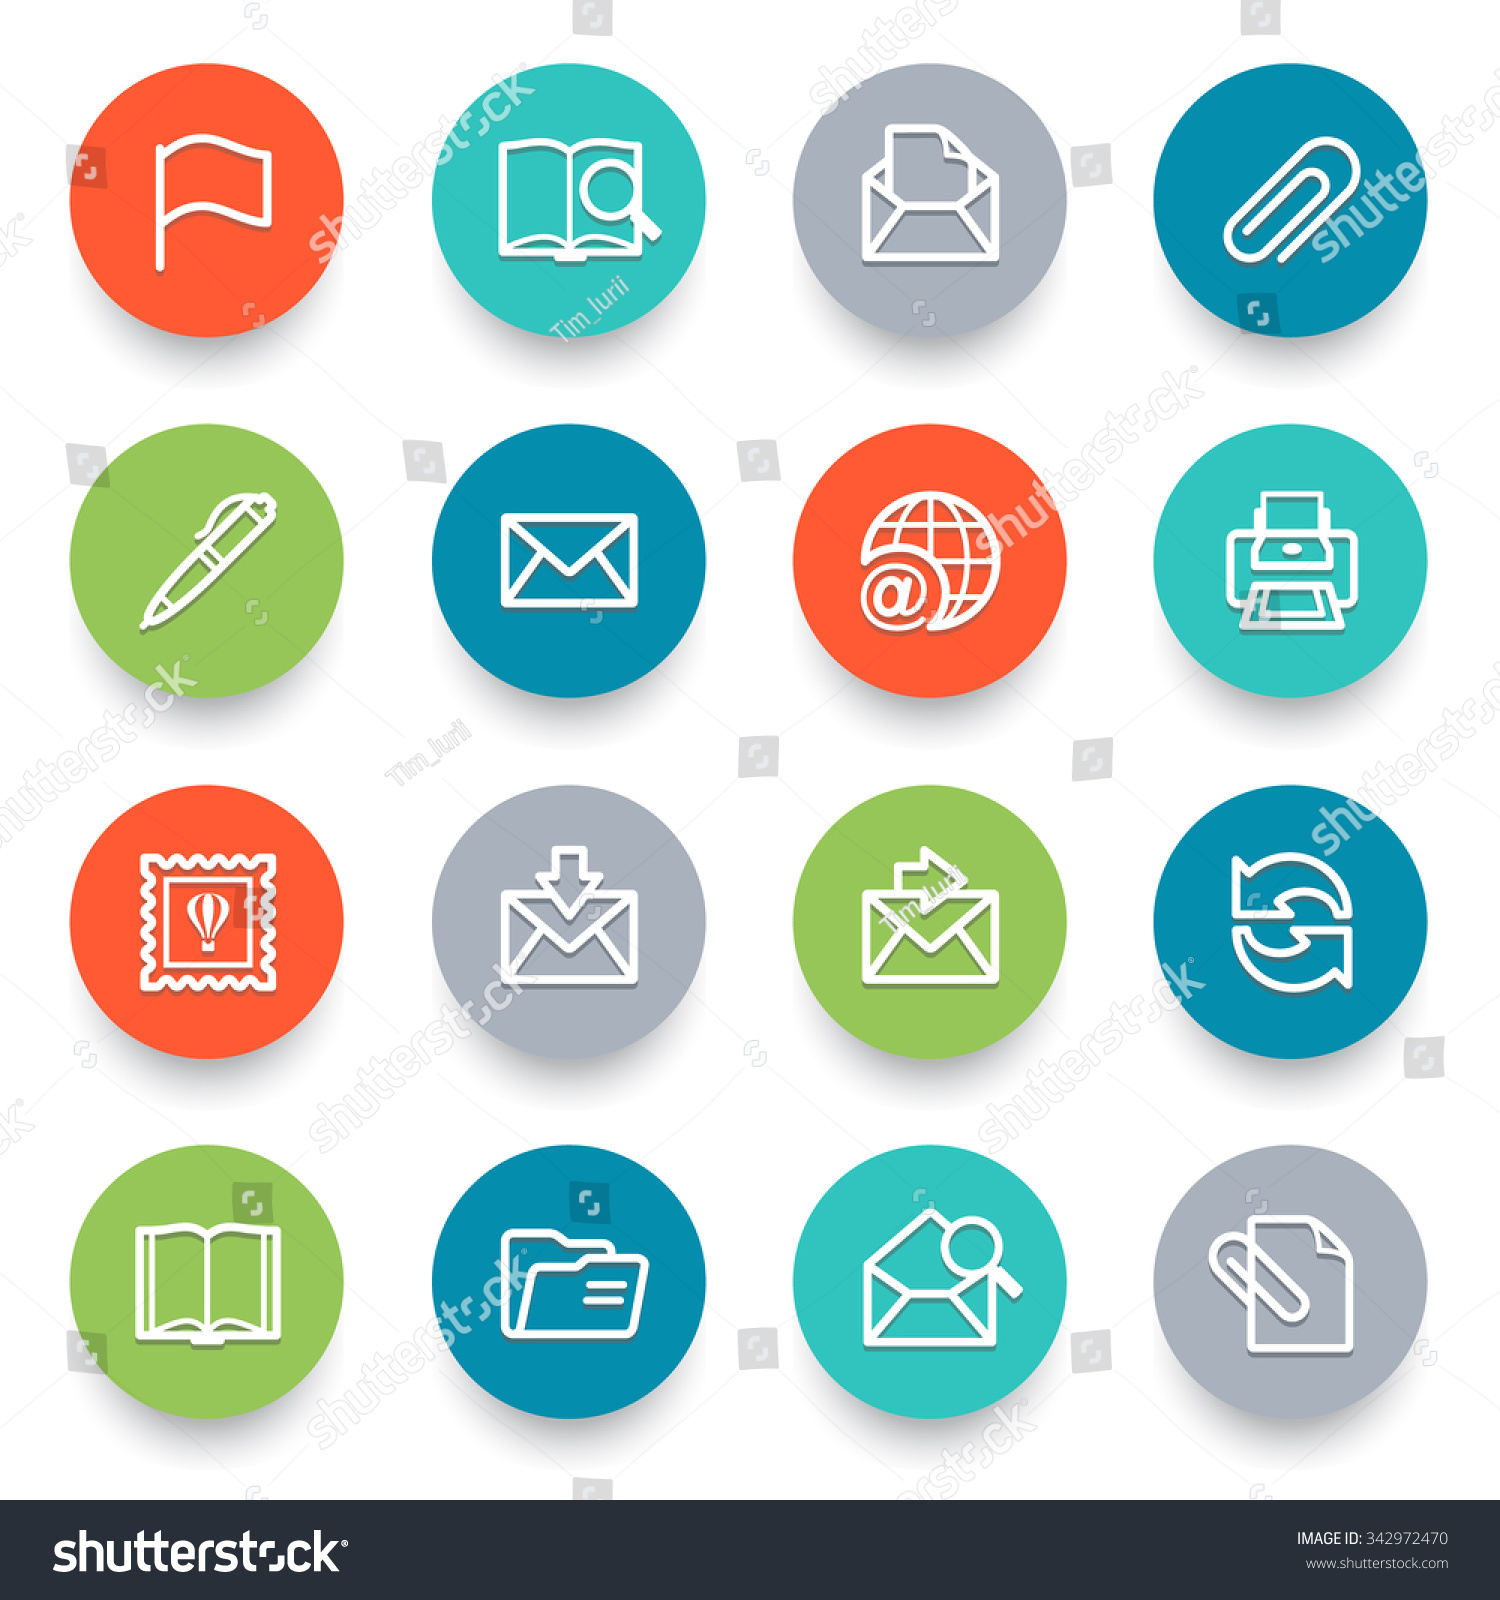 Email icons with color buttons Flat design